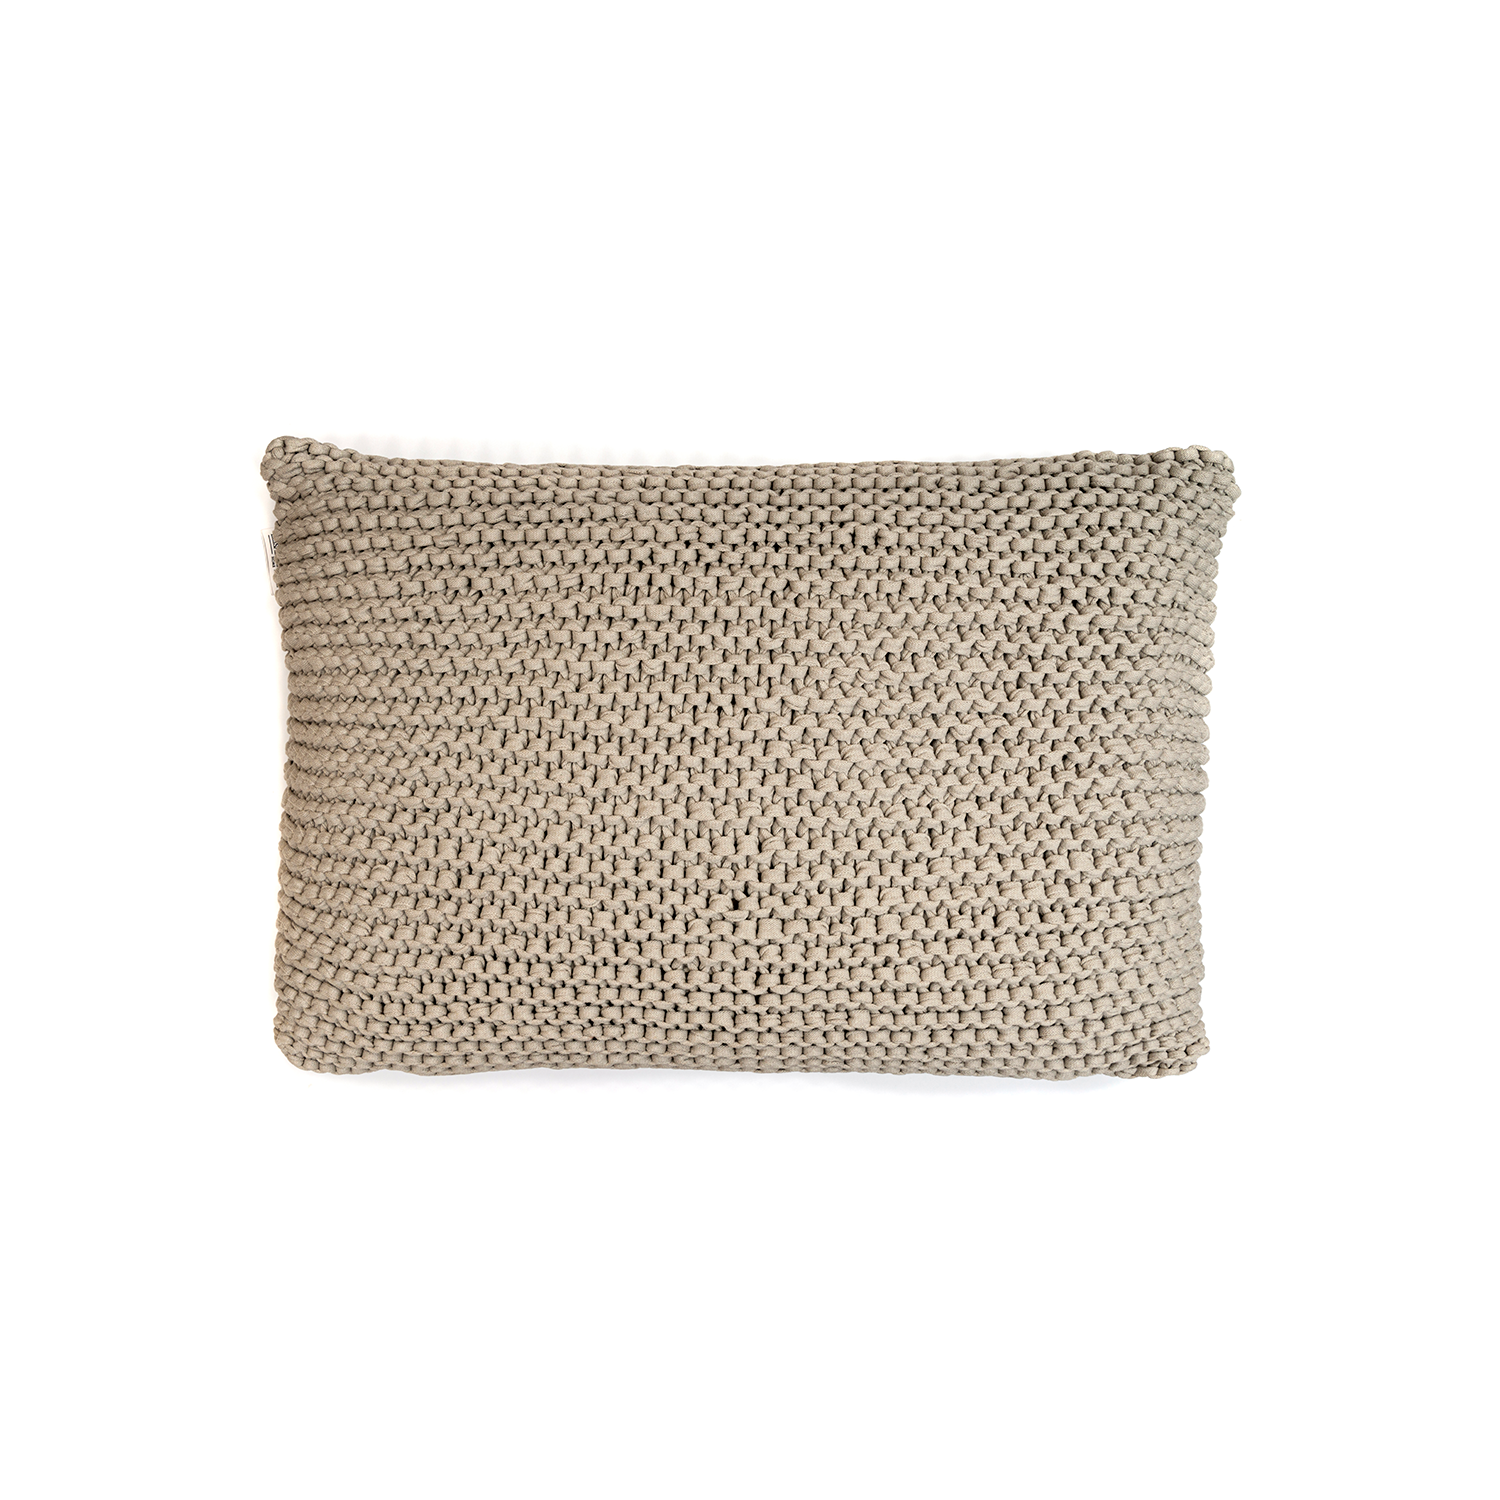 Amsterdam Knitted Cotton Cushion Large - The Amsterdam Line is carefully knitted within a trained community of women that found in their craft a way to provide for their families, each one of these cushions and throws is unique.  Elisa Atheniense Home soft indoors collection is made with natural cotton fibres, eco-friendly, handwoven or elaborated using traditional hand-loom techniques. The use of organic materials brings softness and comfort to the space. This collection combines their mission for responsible sourcing and manufacturing.  The hand woven cotton, washable cushion cover is made in Brazil and the inner cushion is made in the UK. All cushions come with Hollow Fibre filling. European Duck Feathers are optional upon request at an extra cost. Please enquire for more information and see colour chart for reference.   | Matter of Stuff